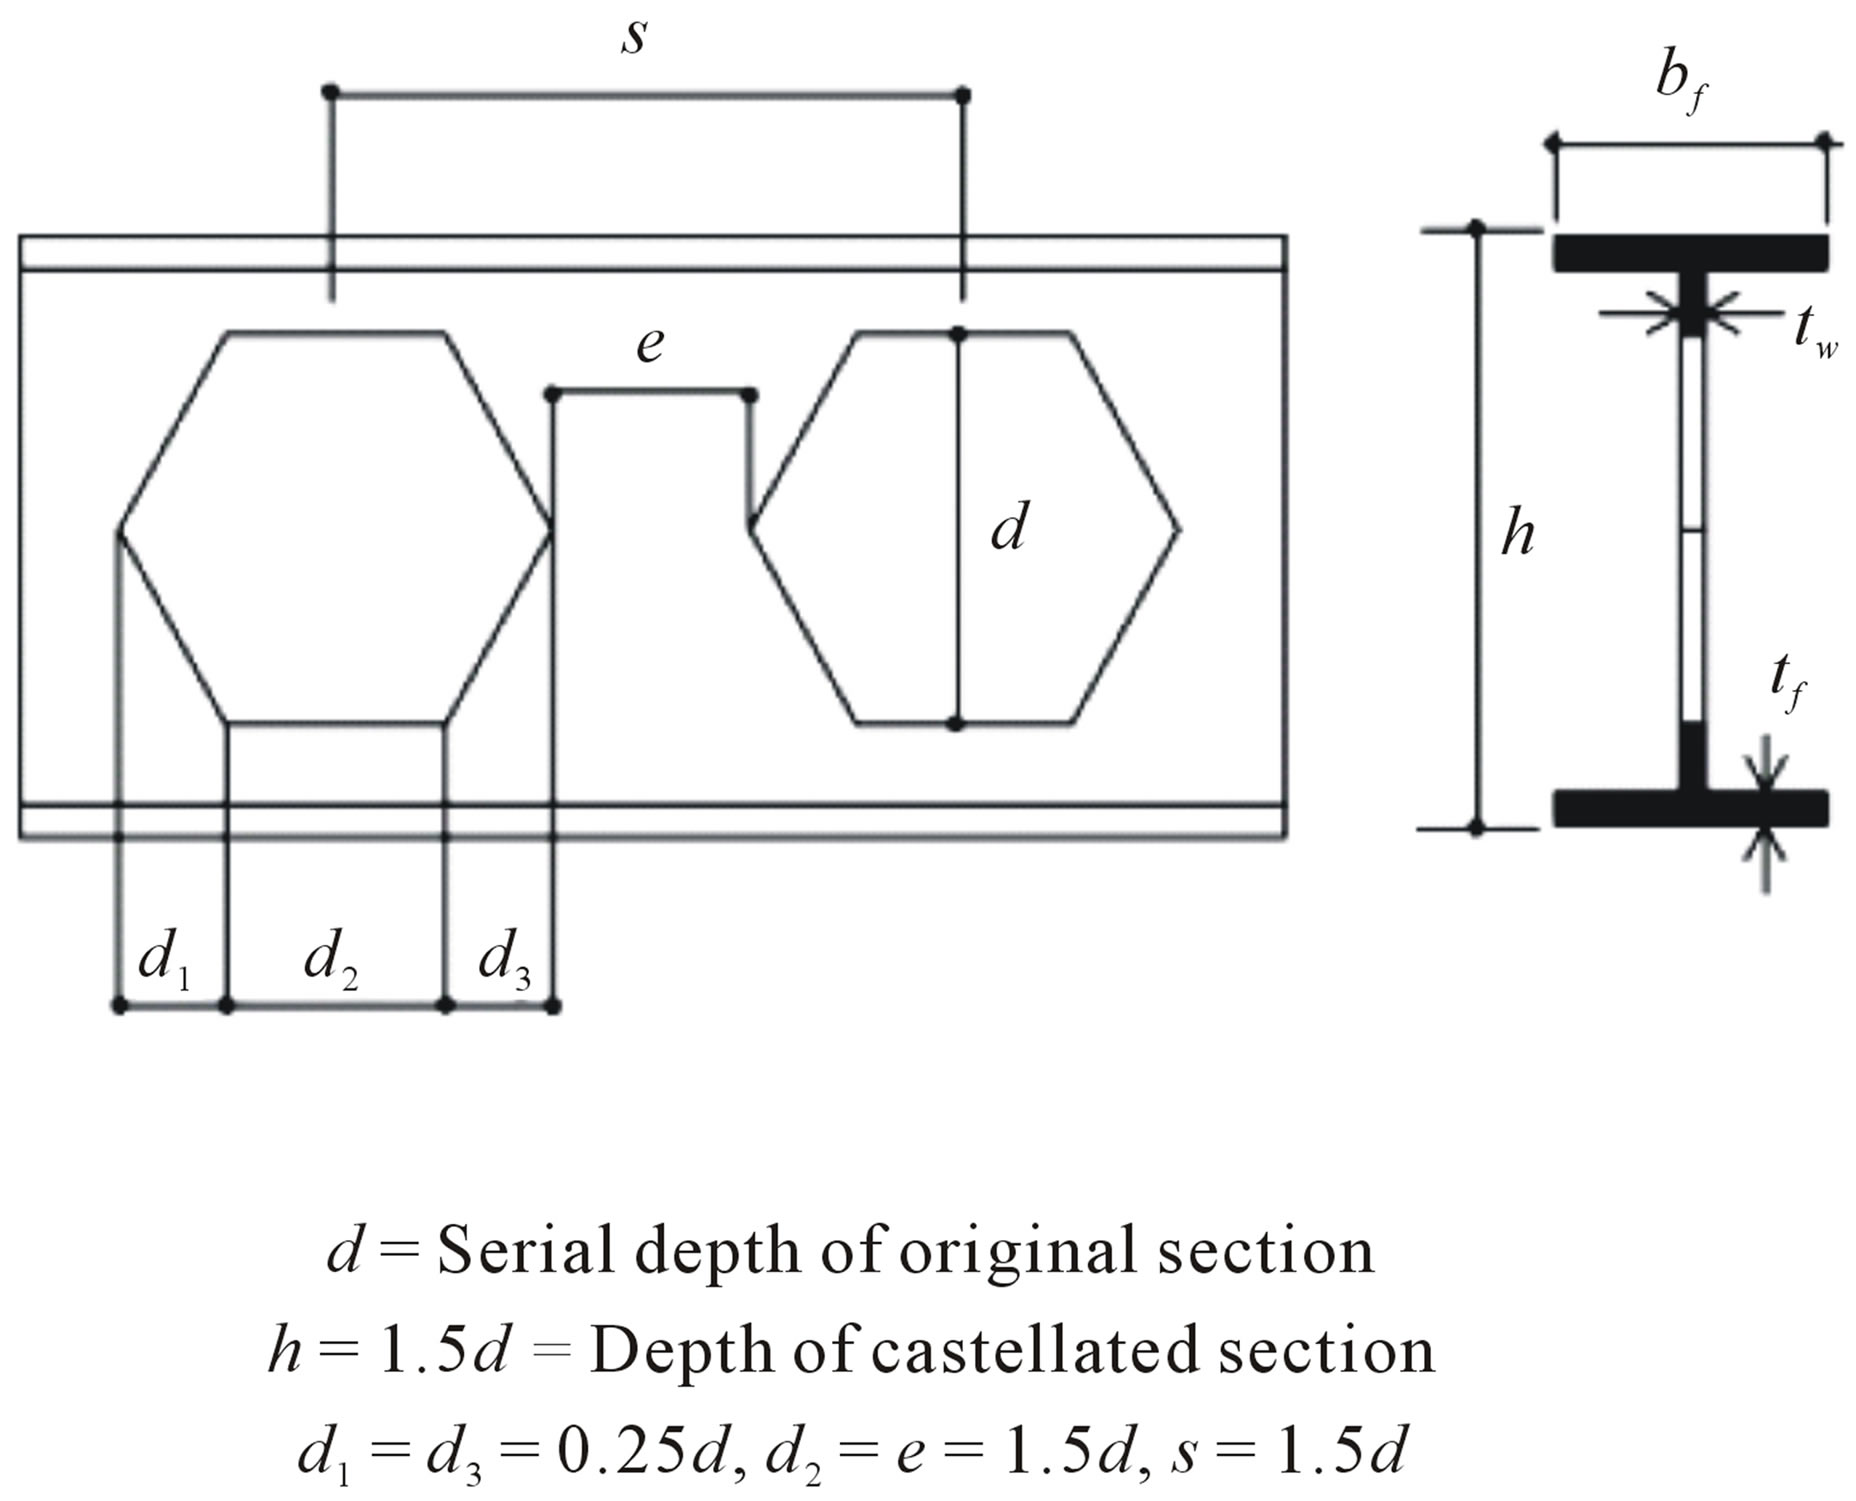 Effect of Beam Length and Braced Length on Moment-Rotation